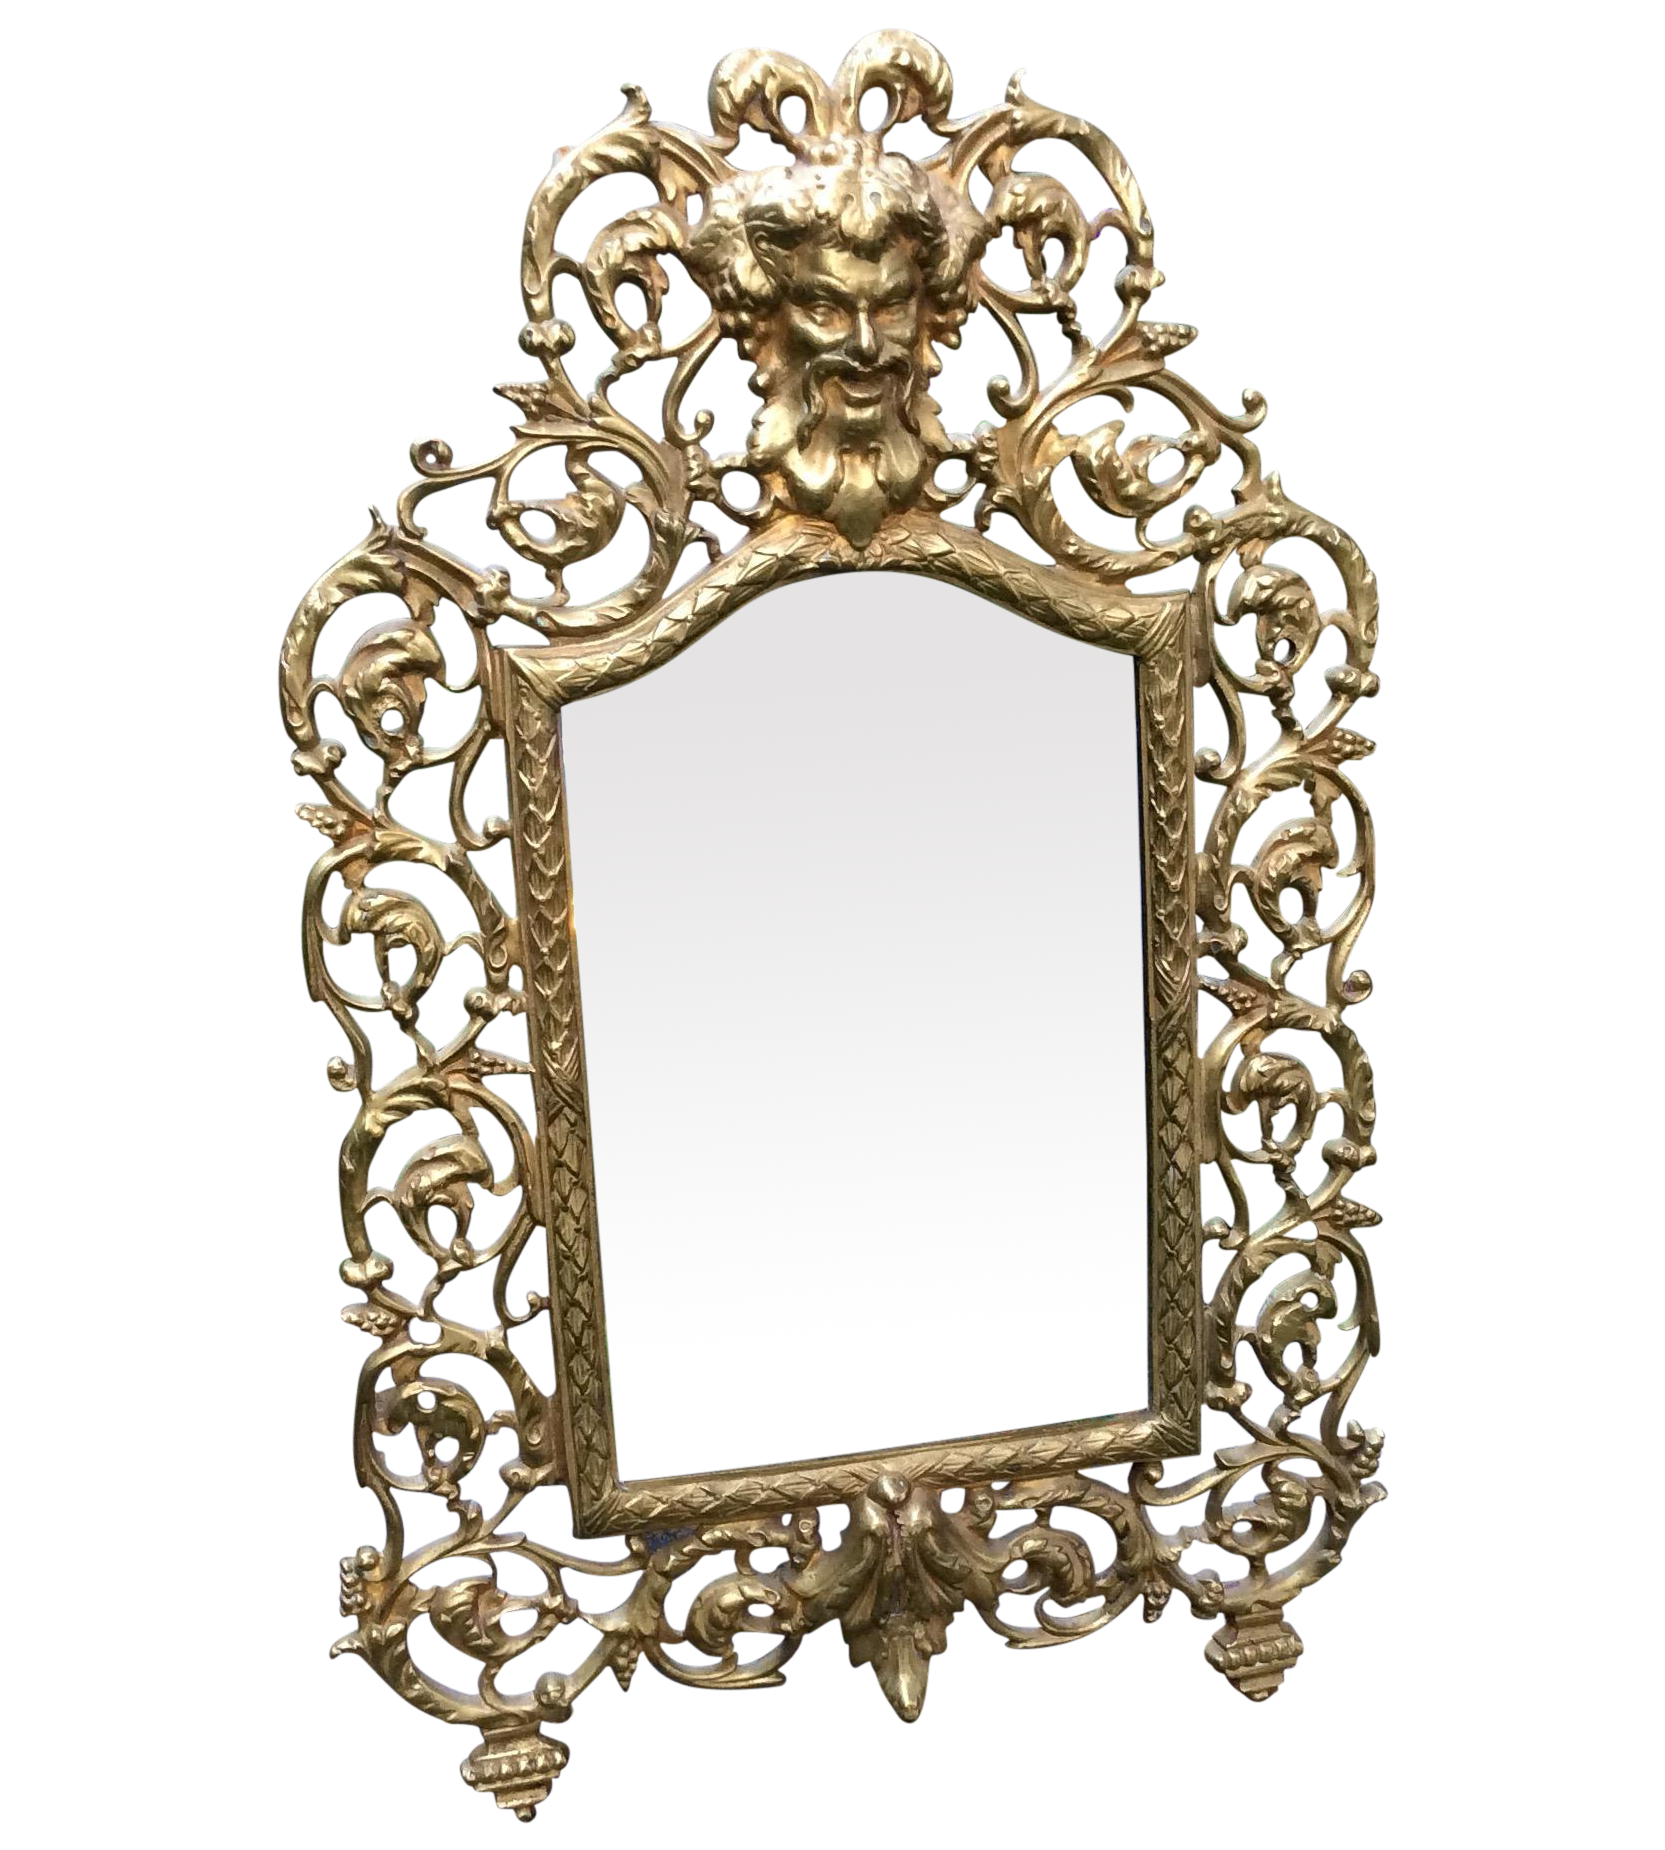 graphic black and white download Mirror transparent victorian. Brass bacchus chairish .